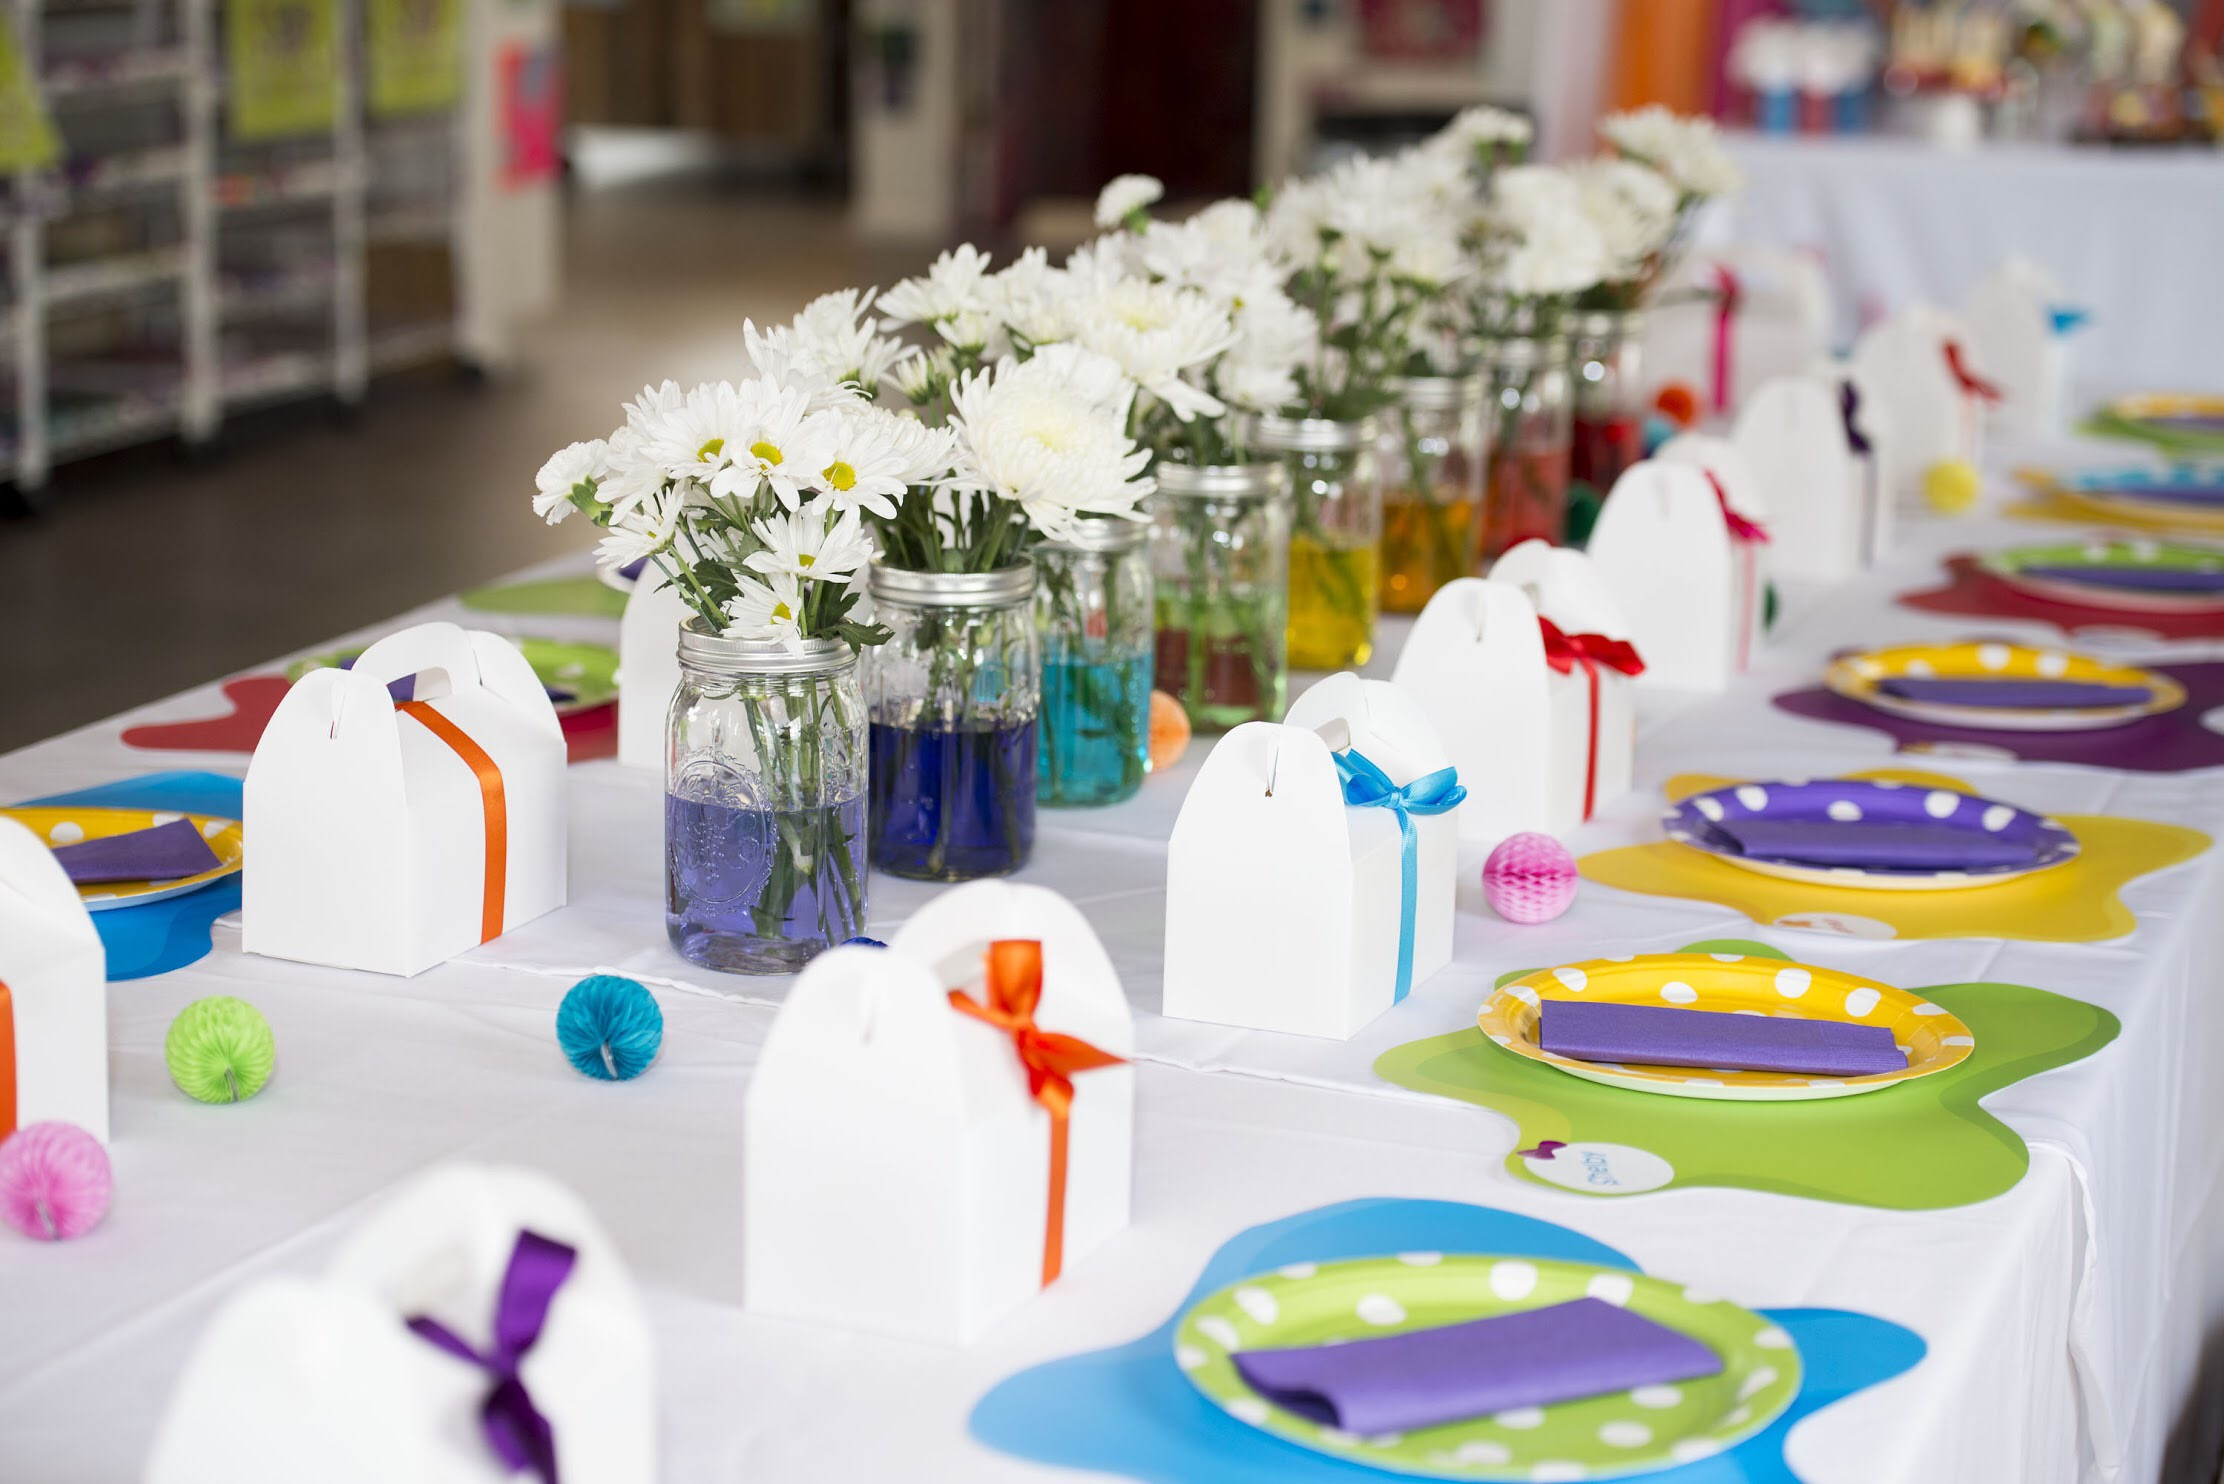 Colorful art themed birthday party features white gable favor boxes with colorful ribbon, polka dot plates and daisies in mason jars with rainbow colored water. See all the art themed party ideas on Mint Event Design www.minteventdesign.com #kidsparty #kidspartyideas #birthdaypartyideas #artparty #rainbowparty